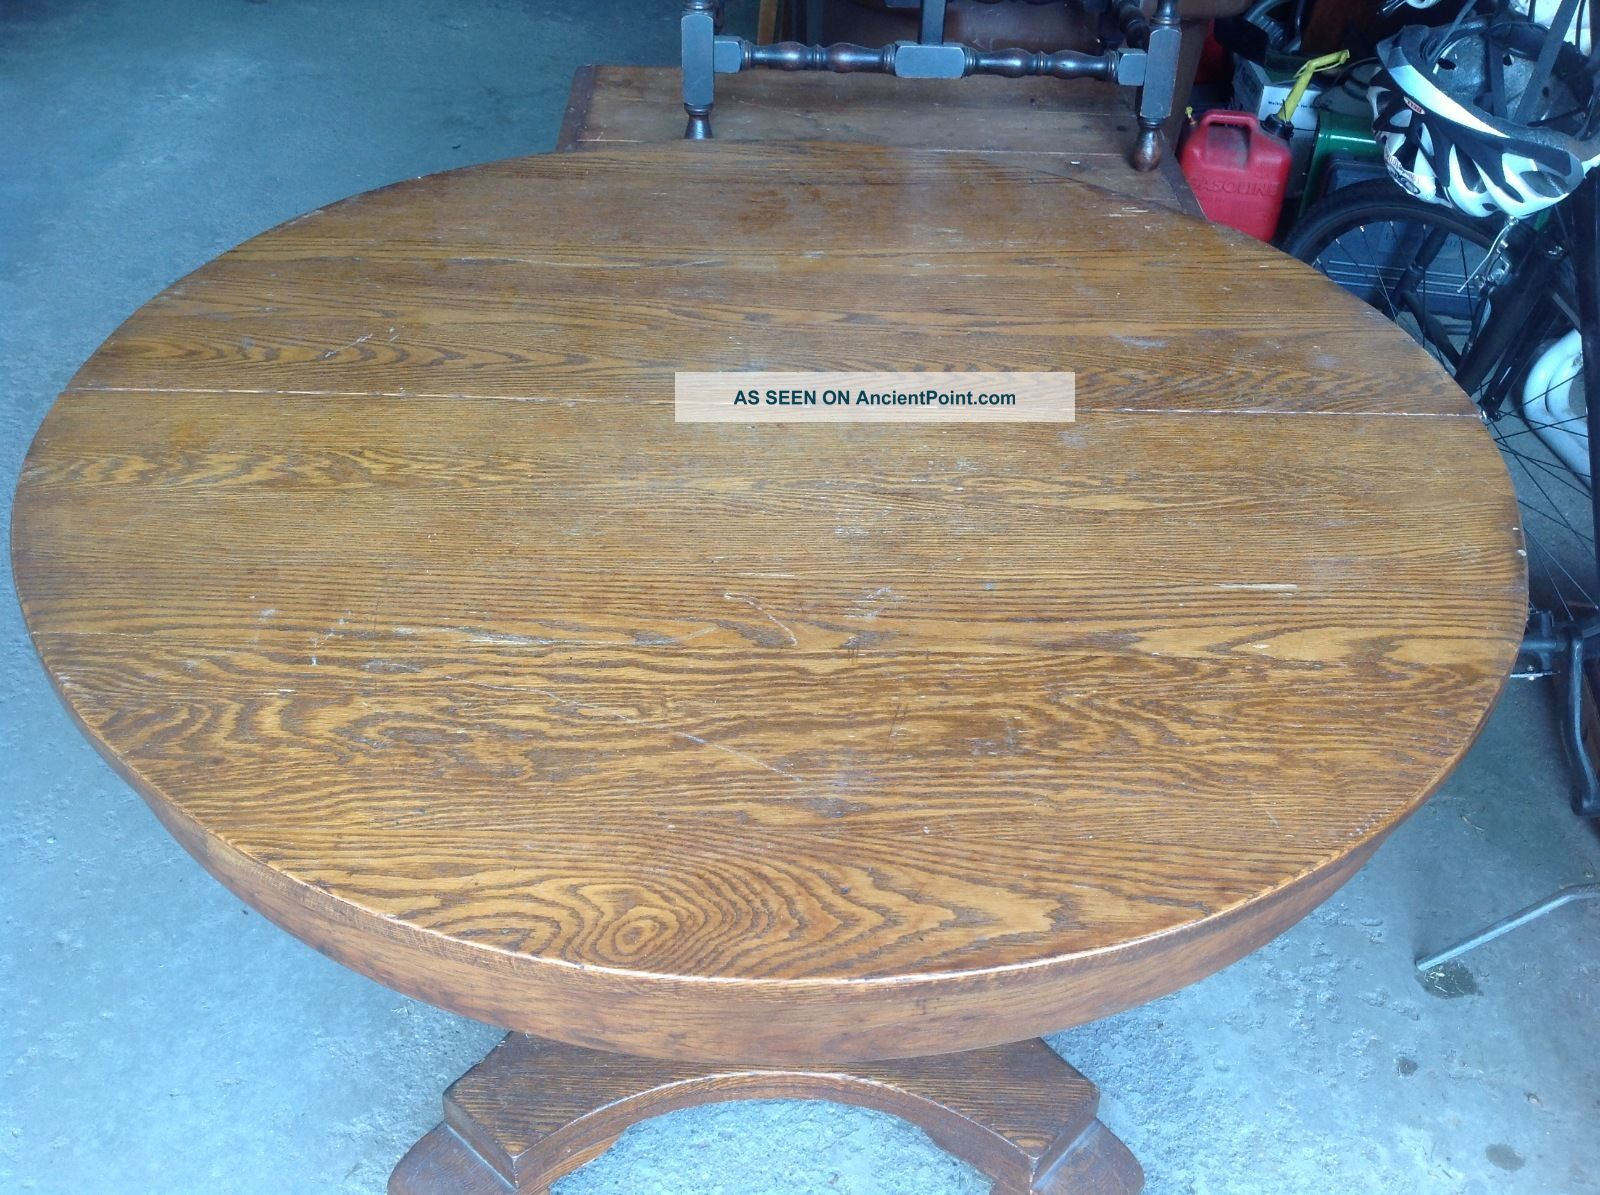 Antique Oak Table And 4 Chairs 1900-1950 photo